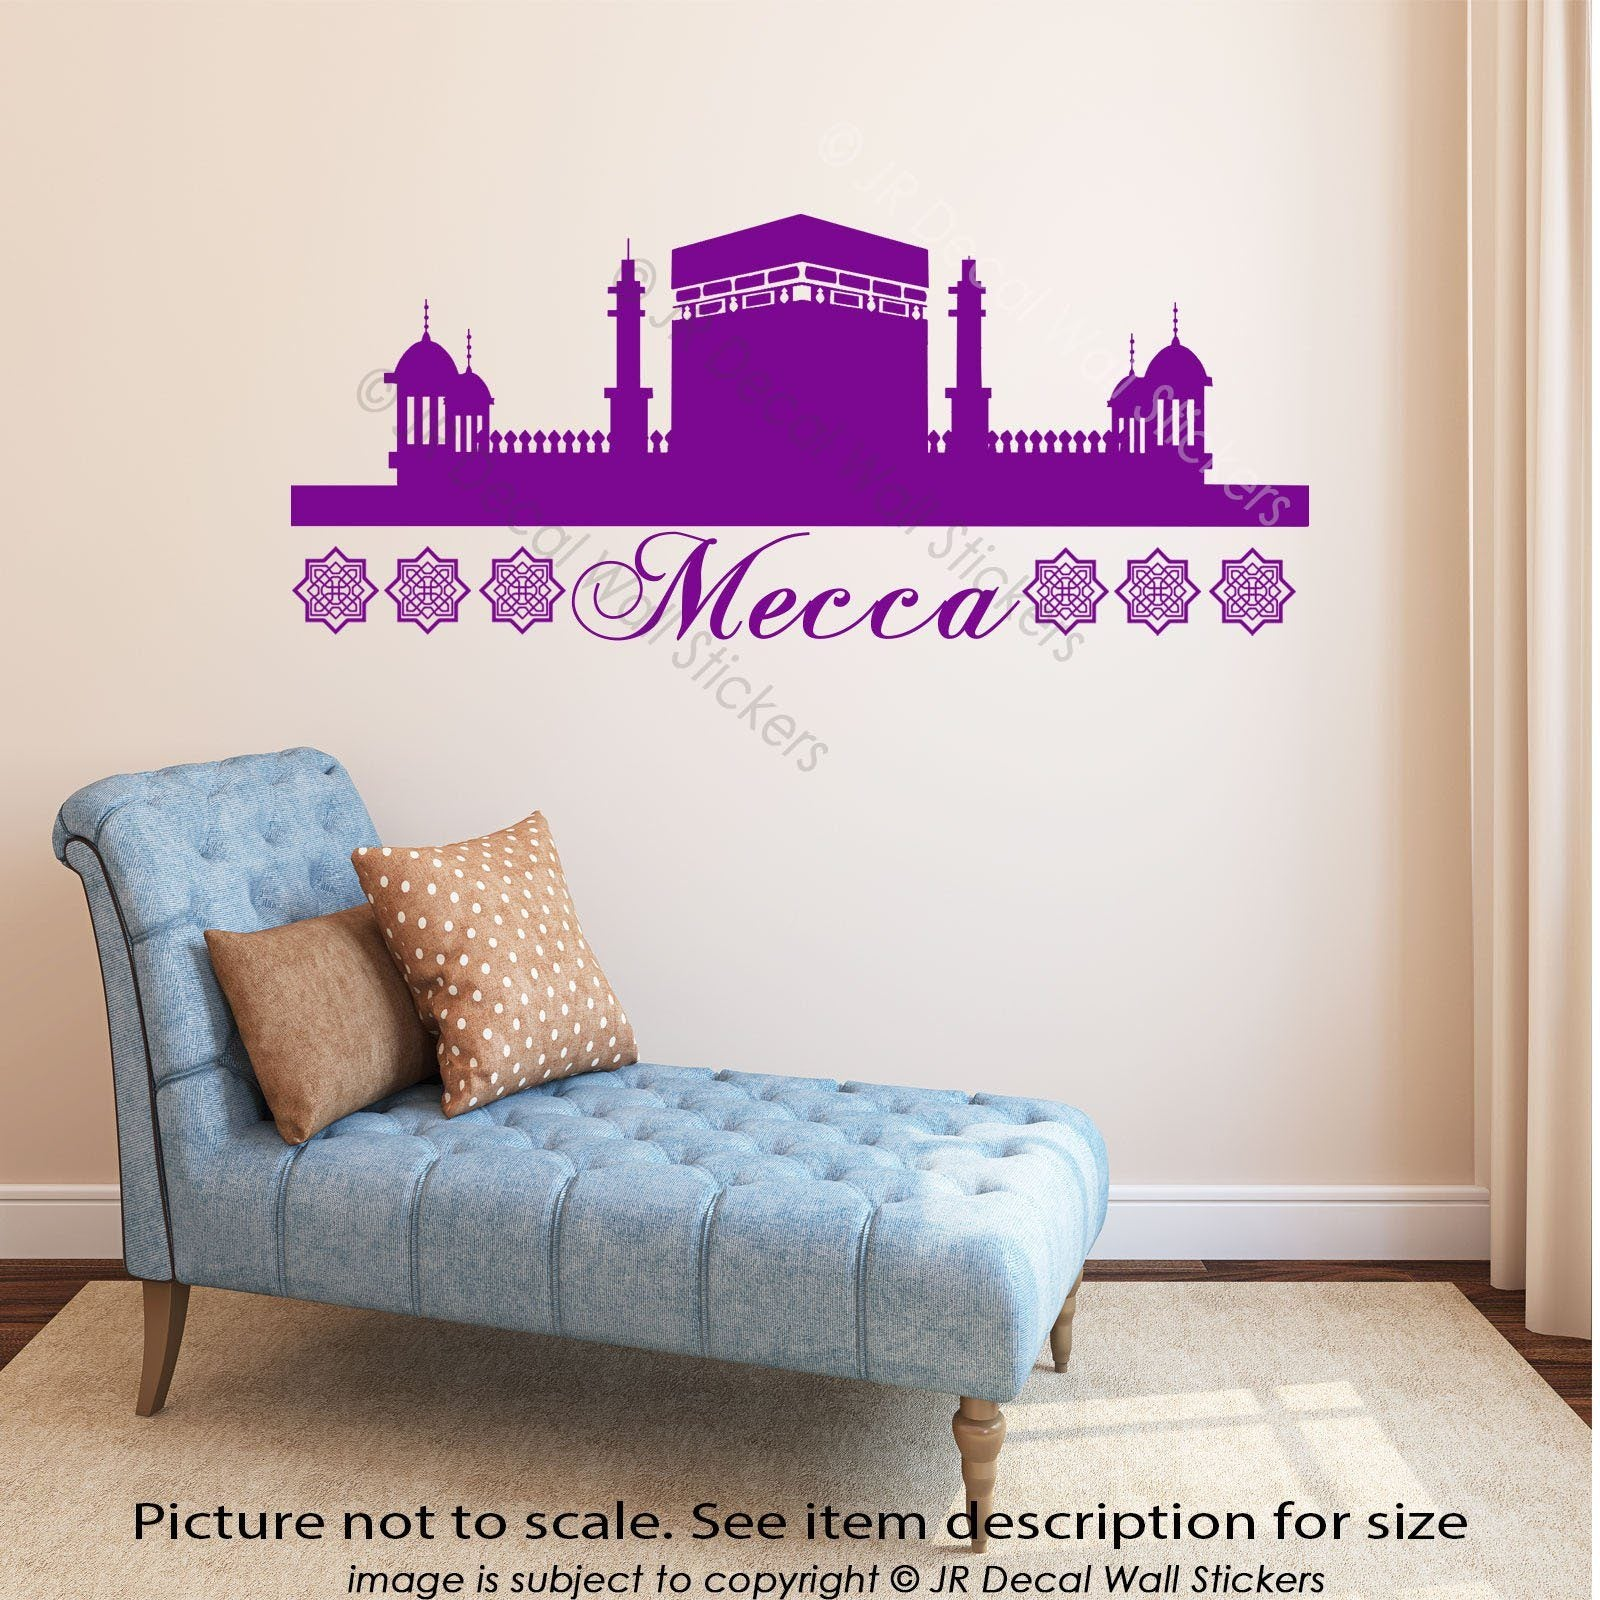 Islamic quranic verses wall art jr decal wall stickers amipublicfo Image collections